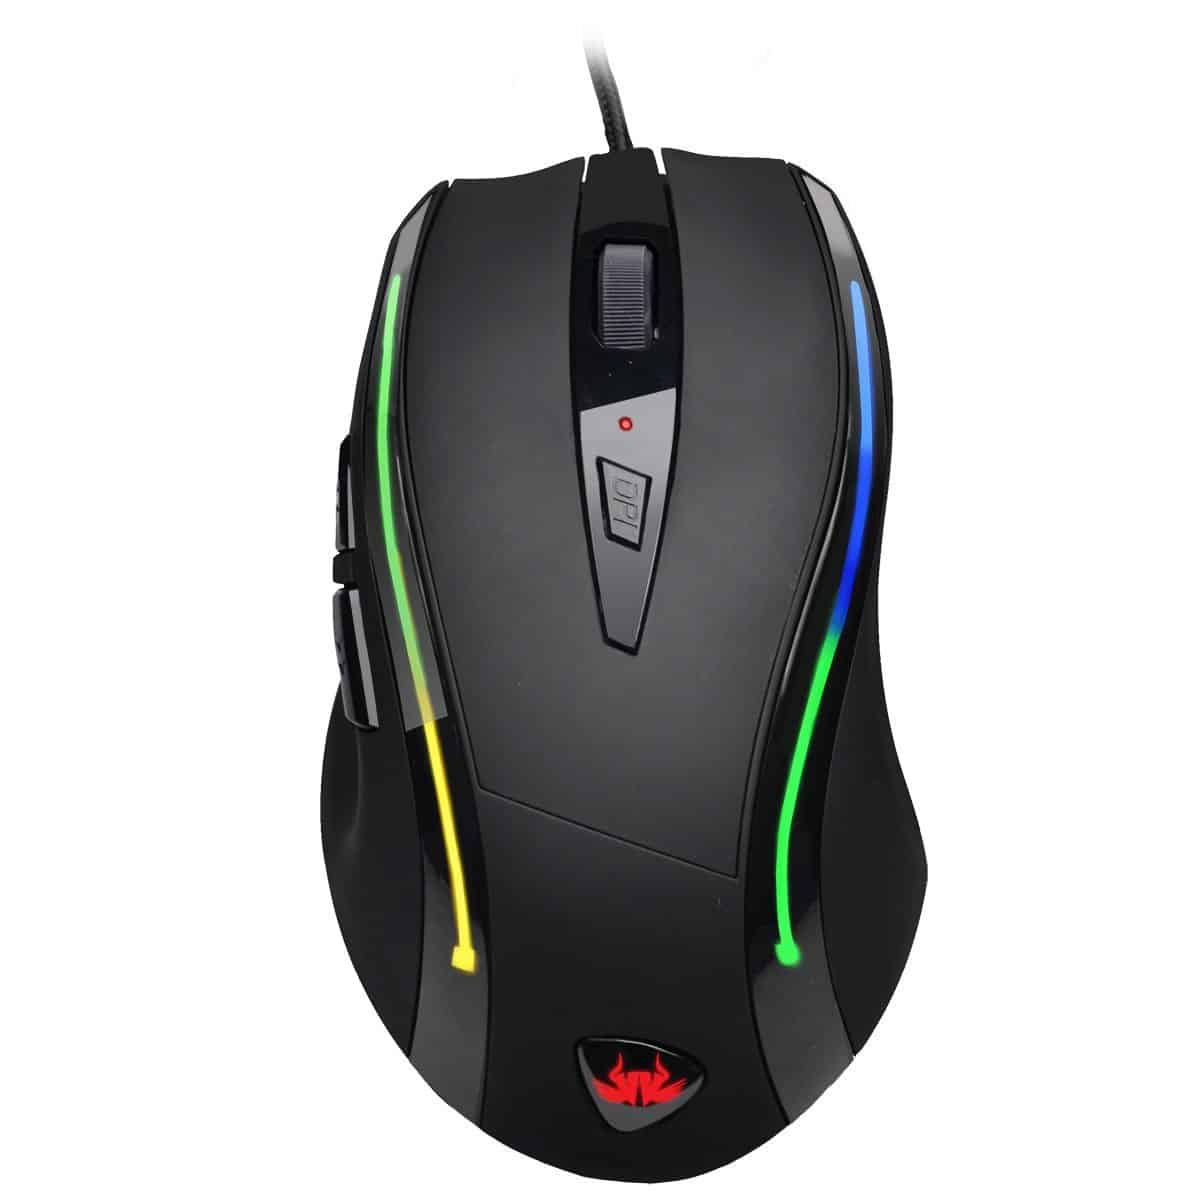 Nemesis KATA Gaming Mouse Review